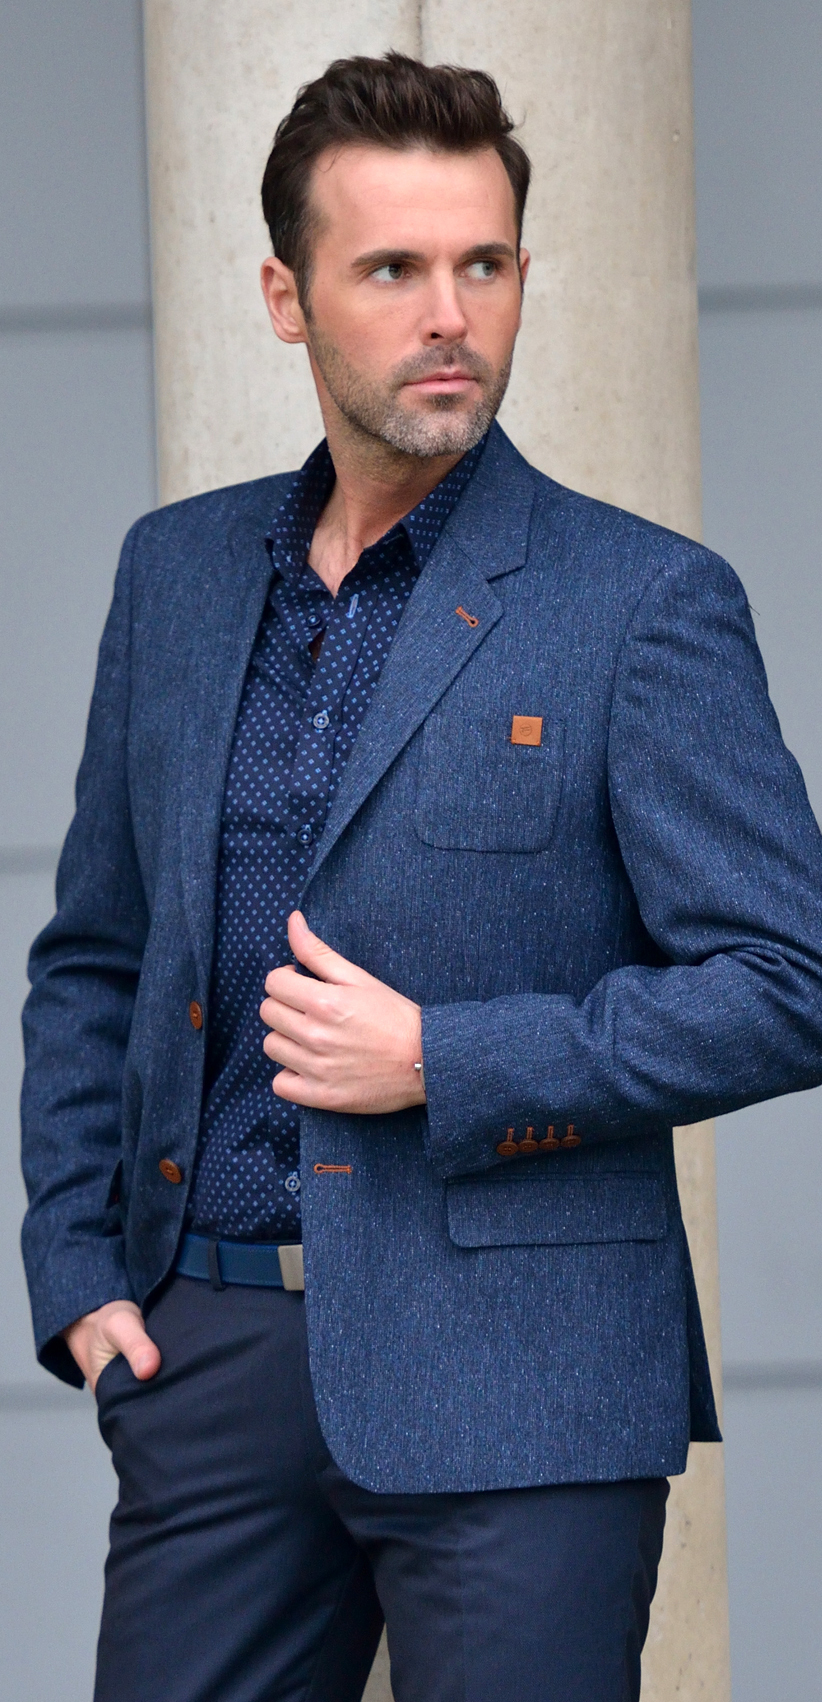 TWEED NAVY BLUE